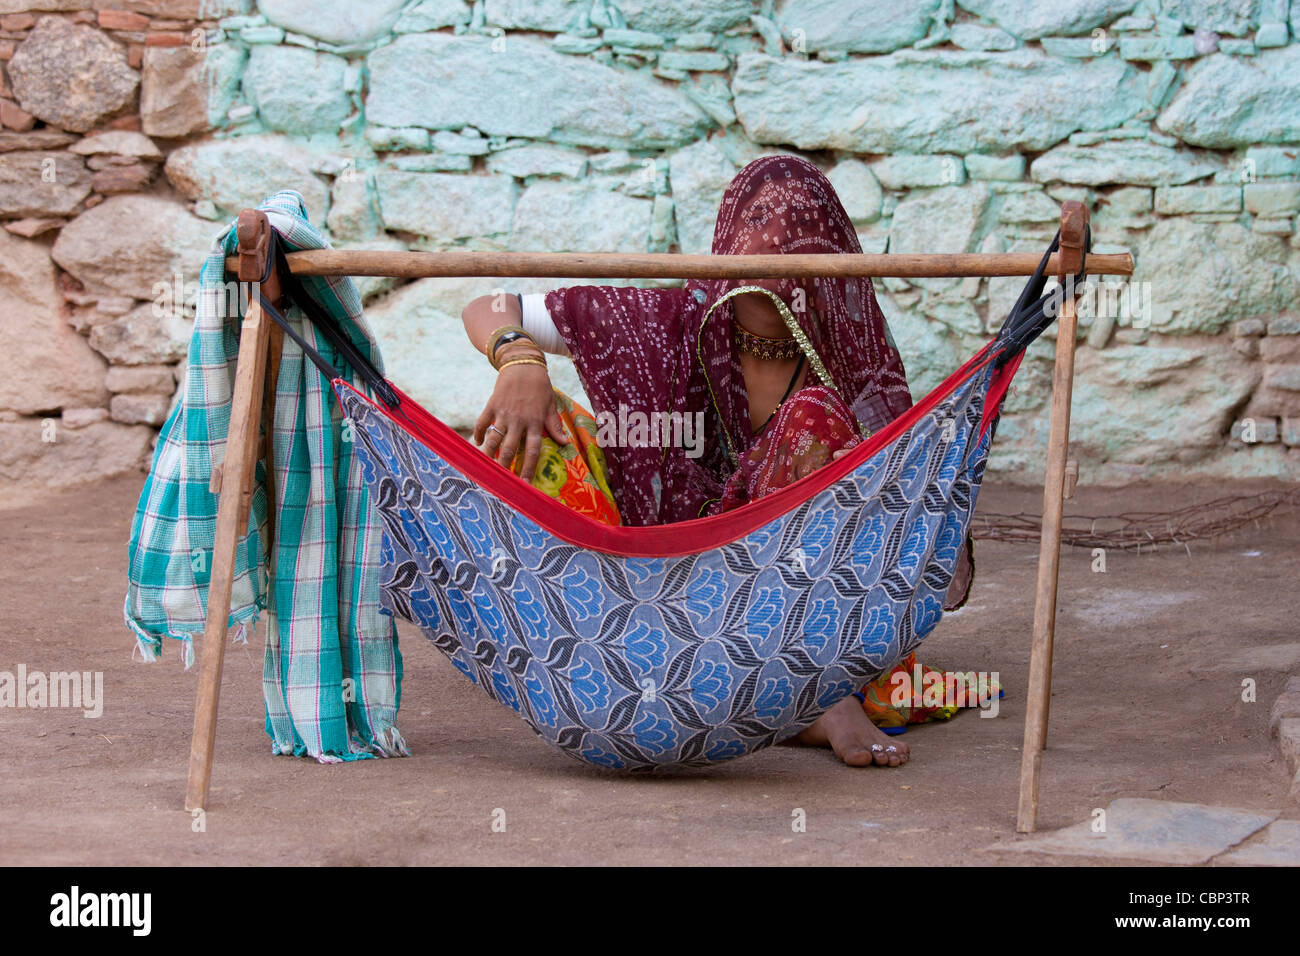 Young Indian woman with her child in hammock at home in Narlai village in Rajasthan, Northern India - Stock Image